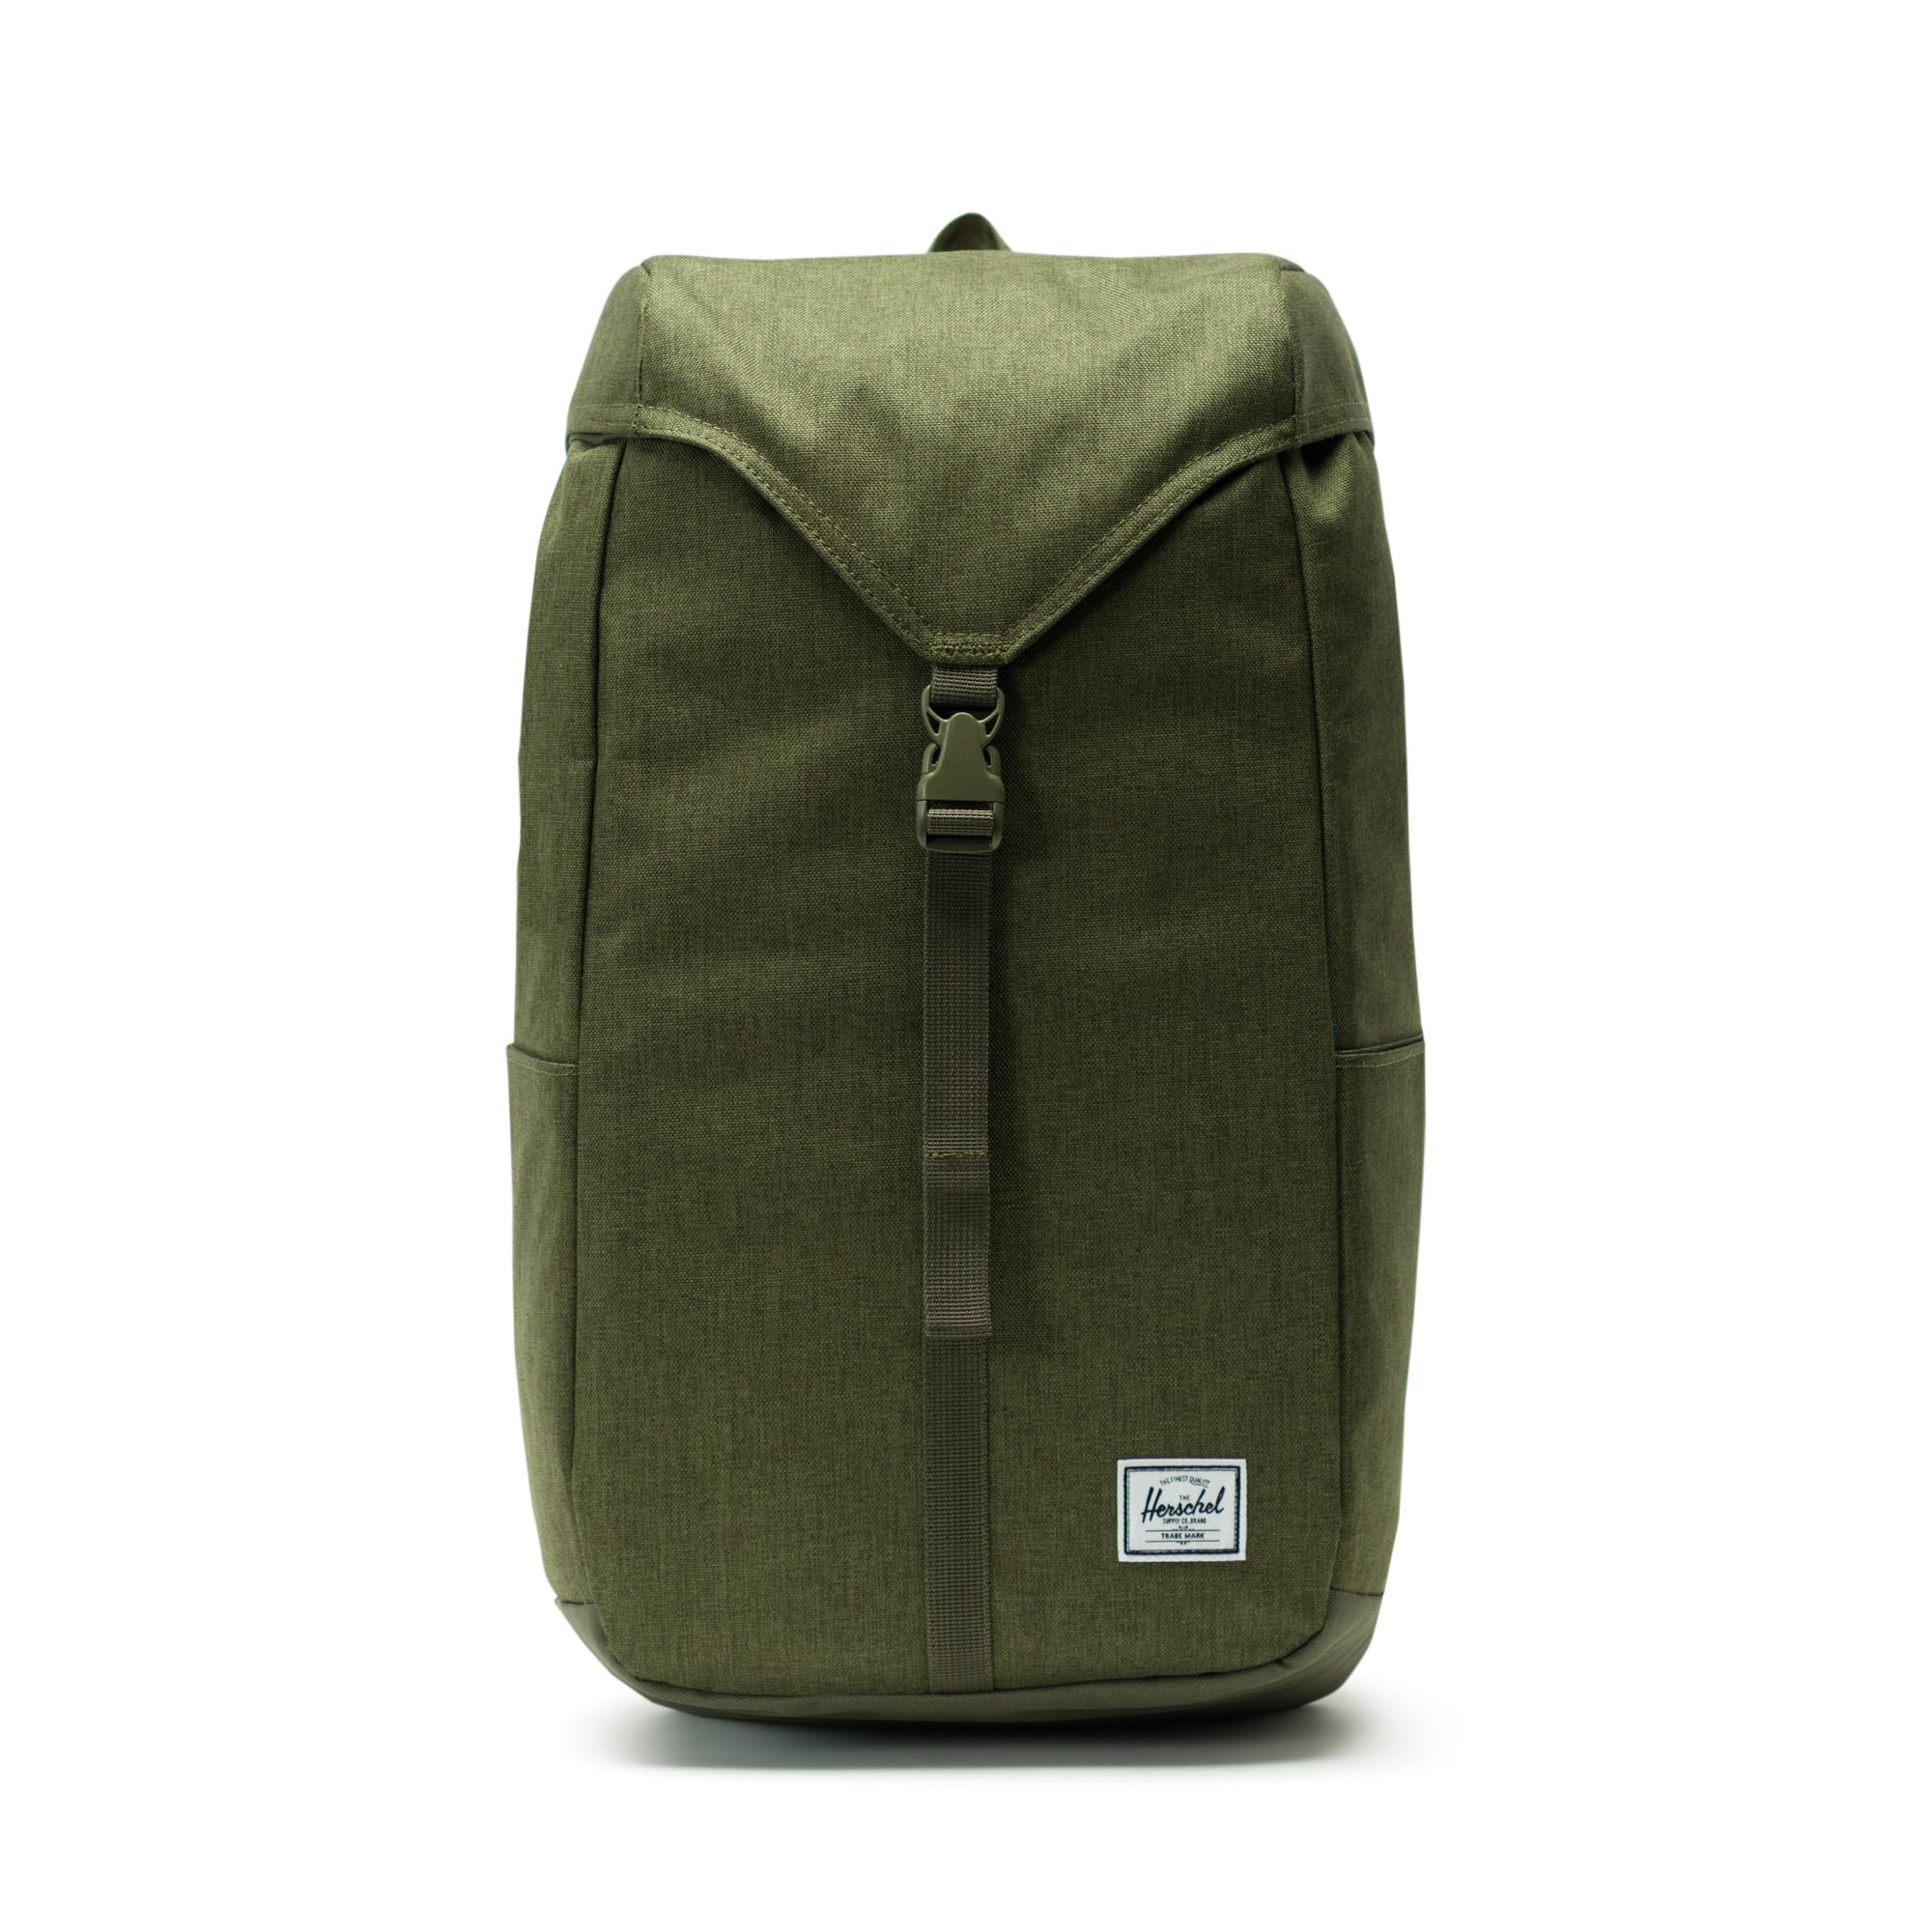 49a75ab4d1d8 Thompson Backpack